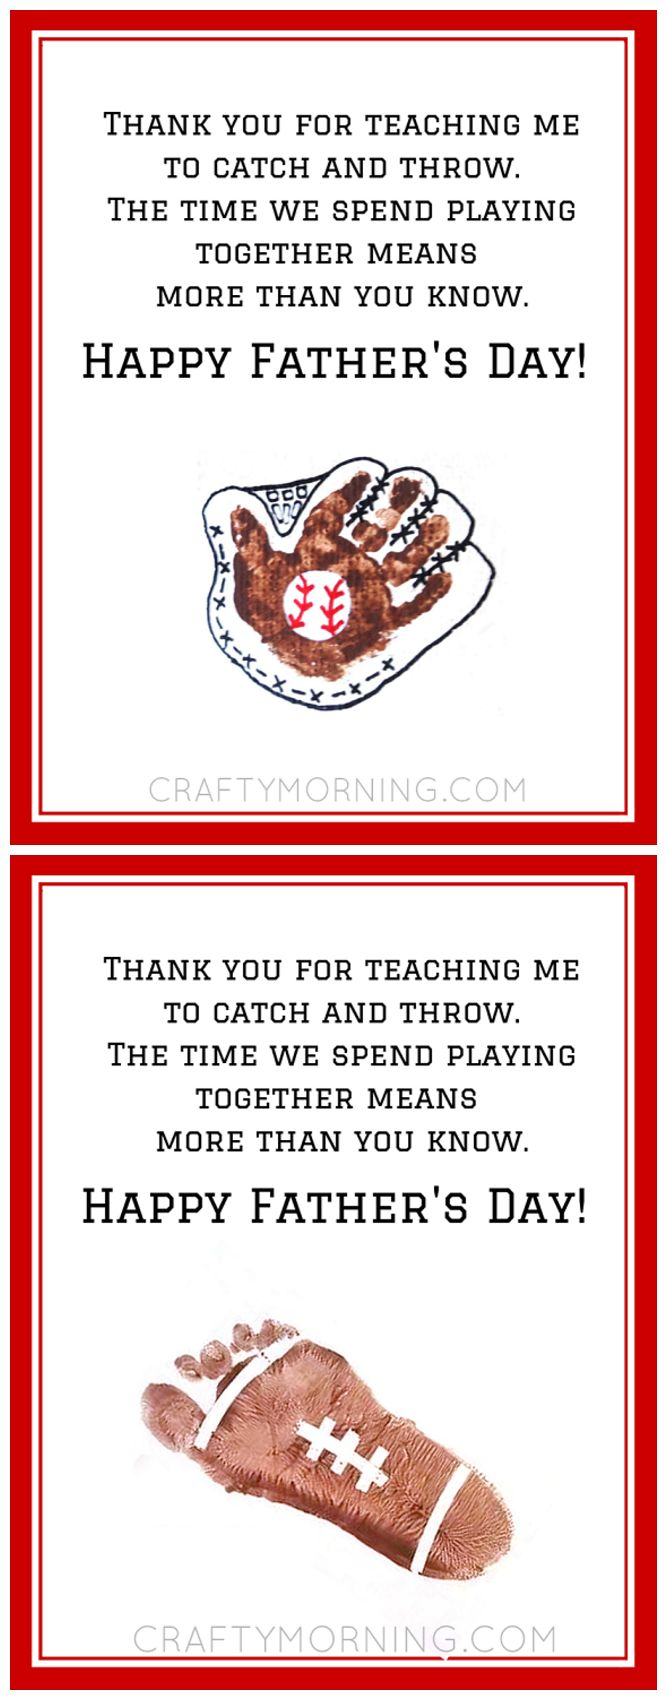 Free Baseball/football Father's Day Poem printable - Great gift/craft from the kids for dad or grandpa!